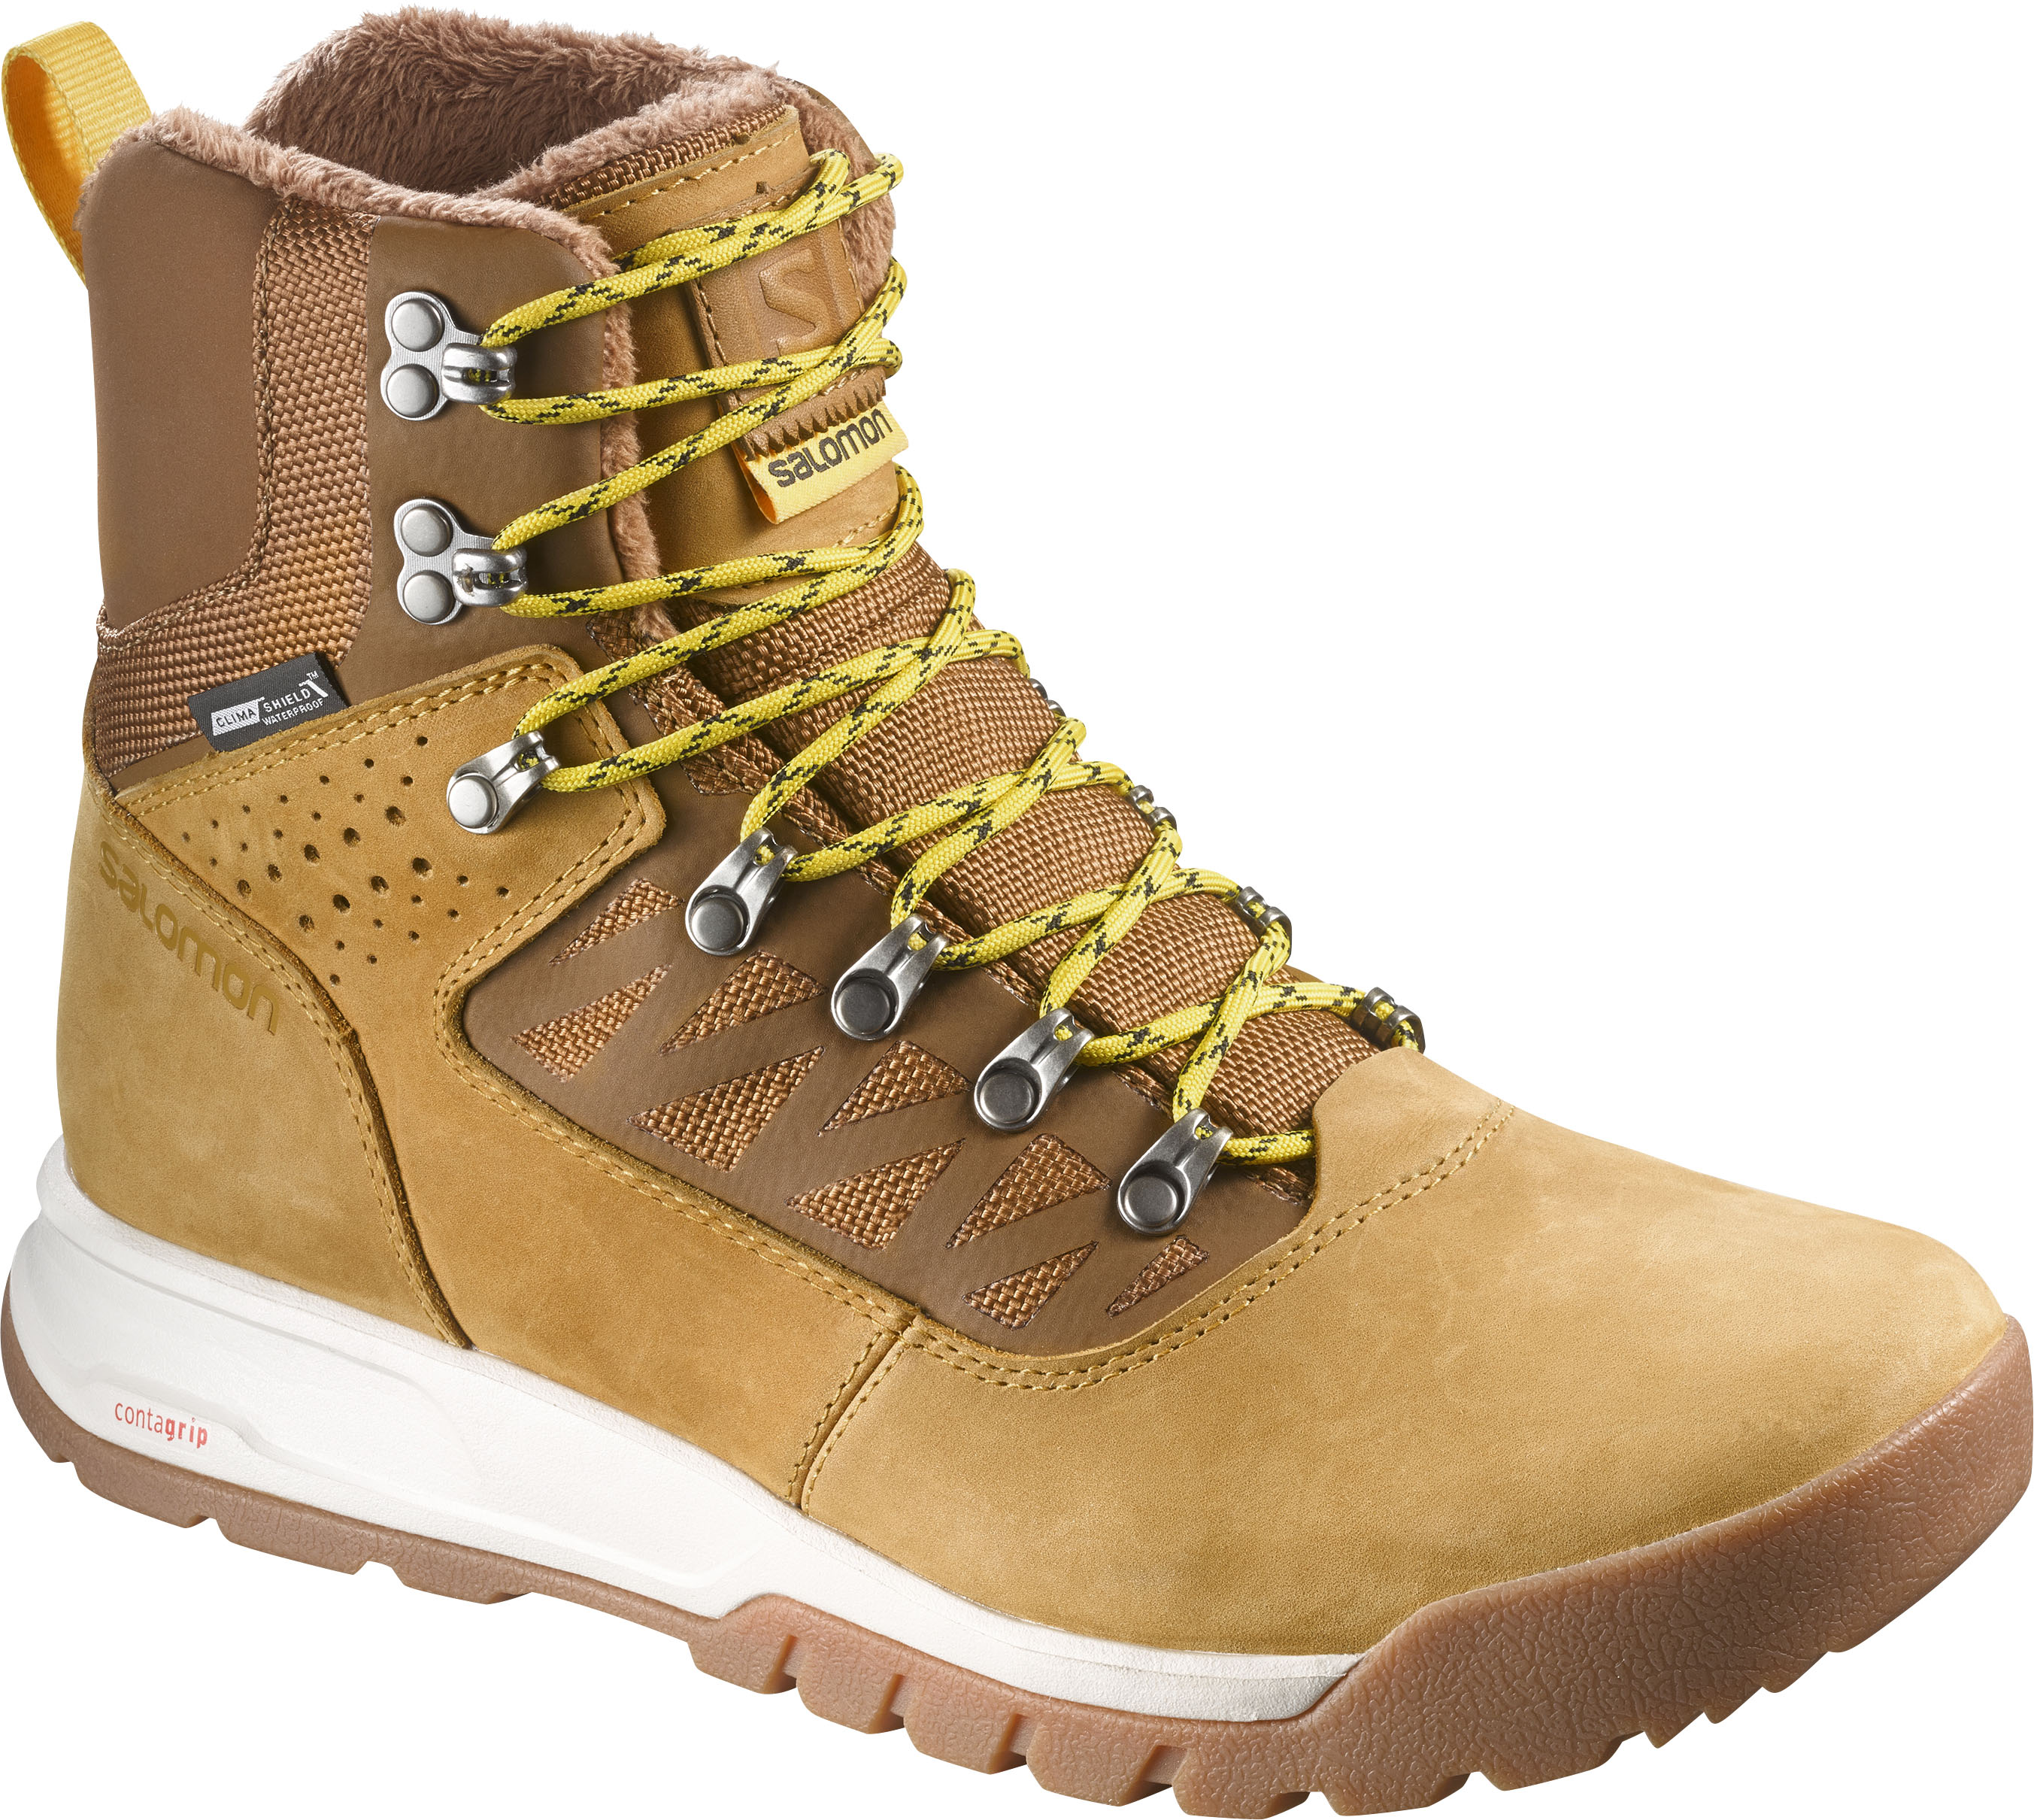 UTILITY PRO TS CSWP Schuh 2017 camel gold